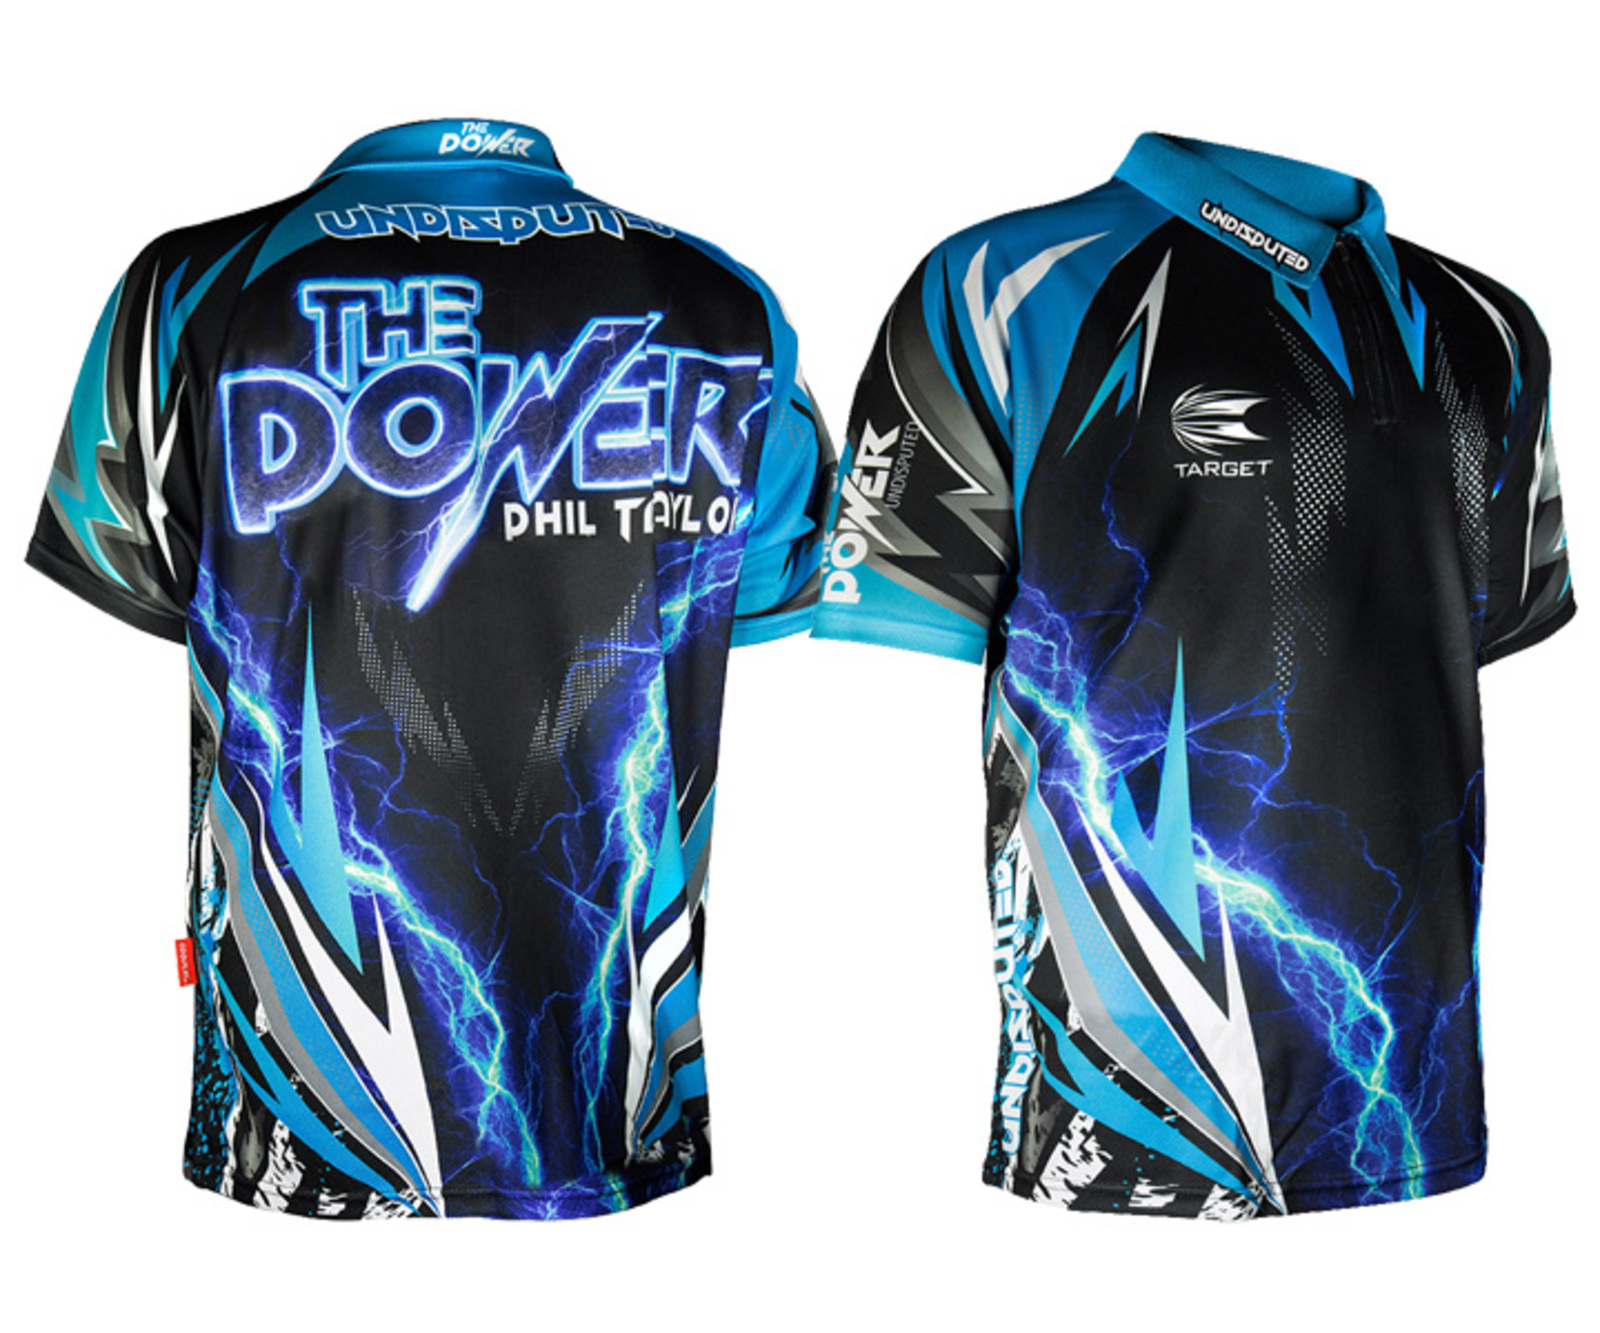 phil taylor jersey